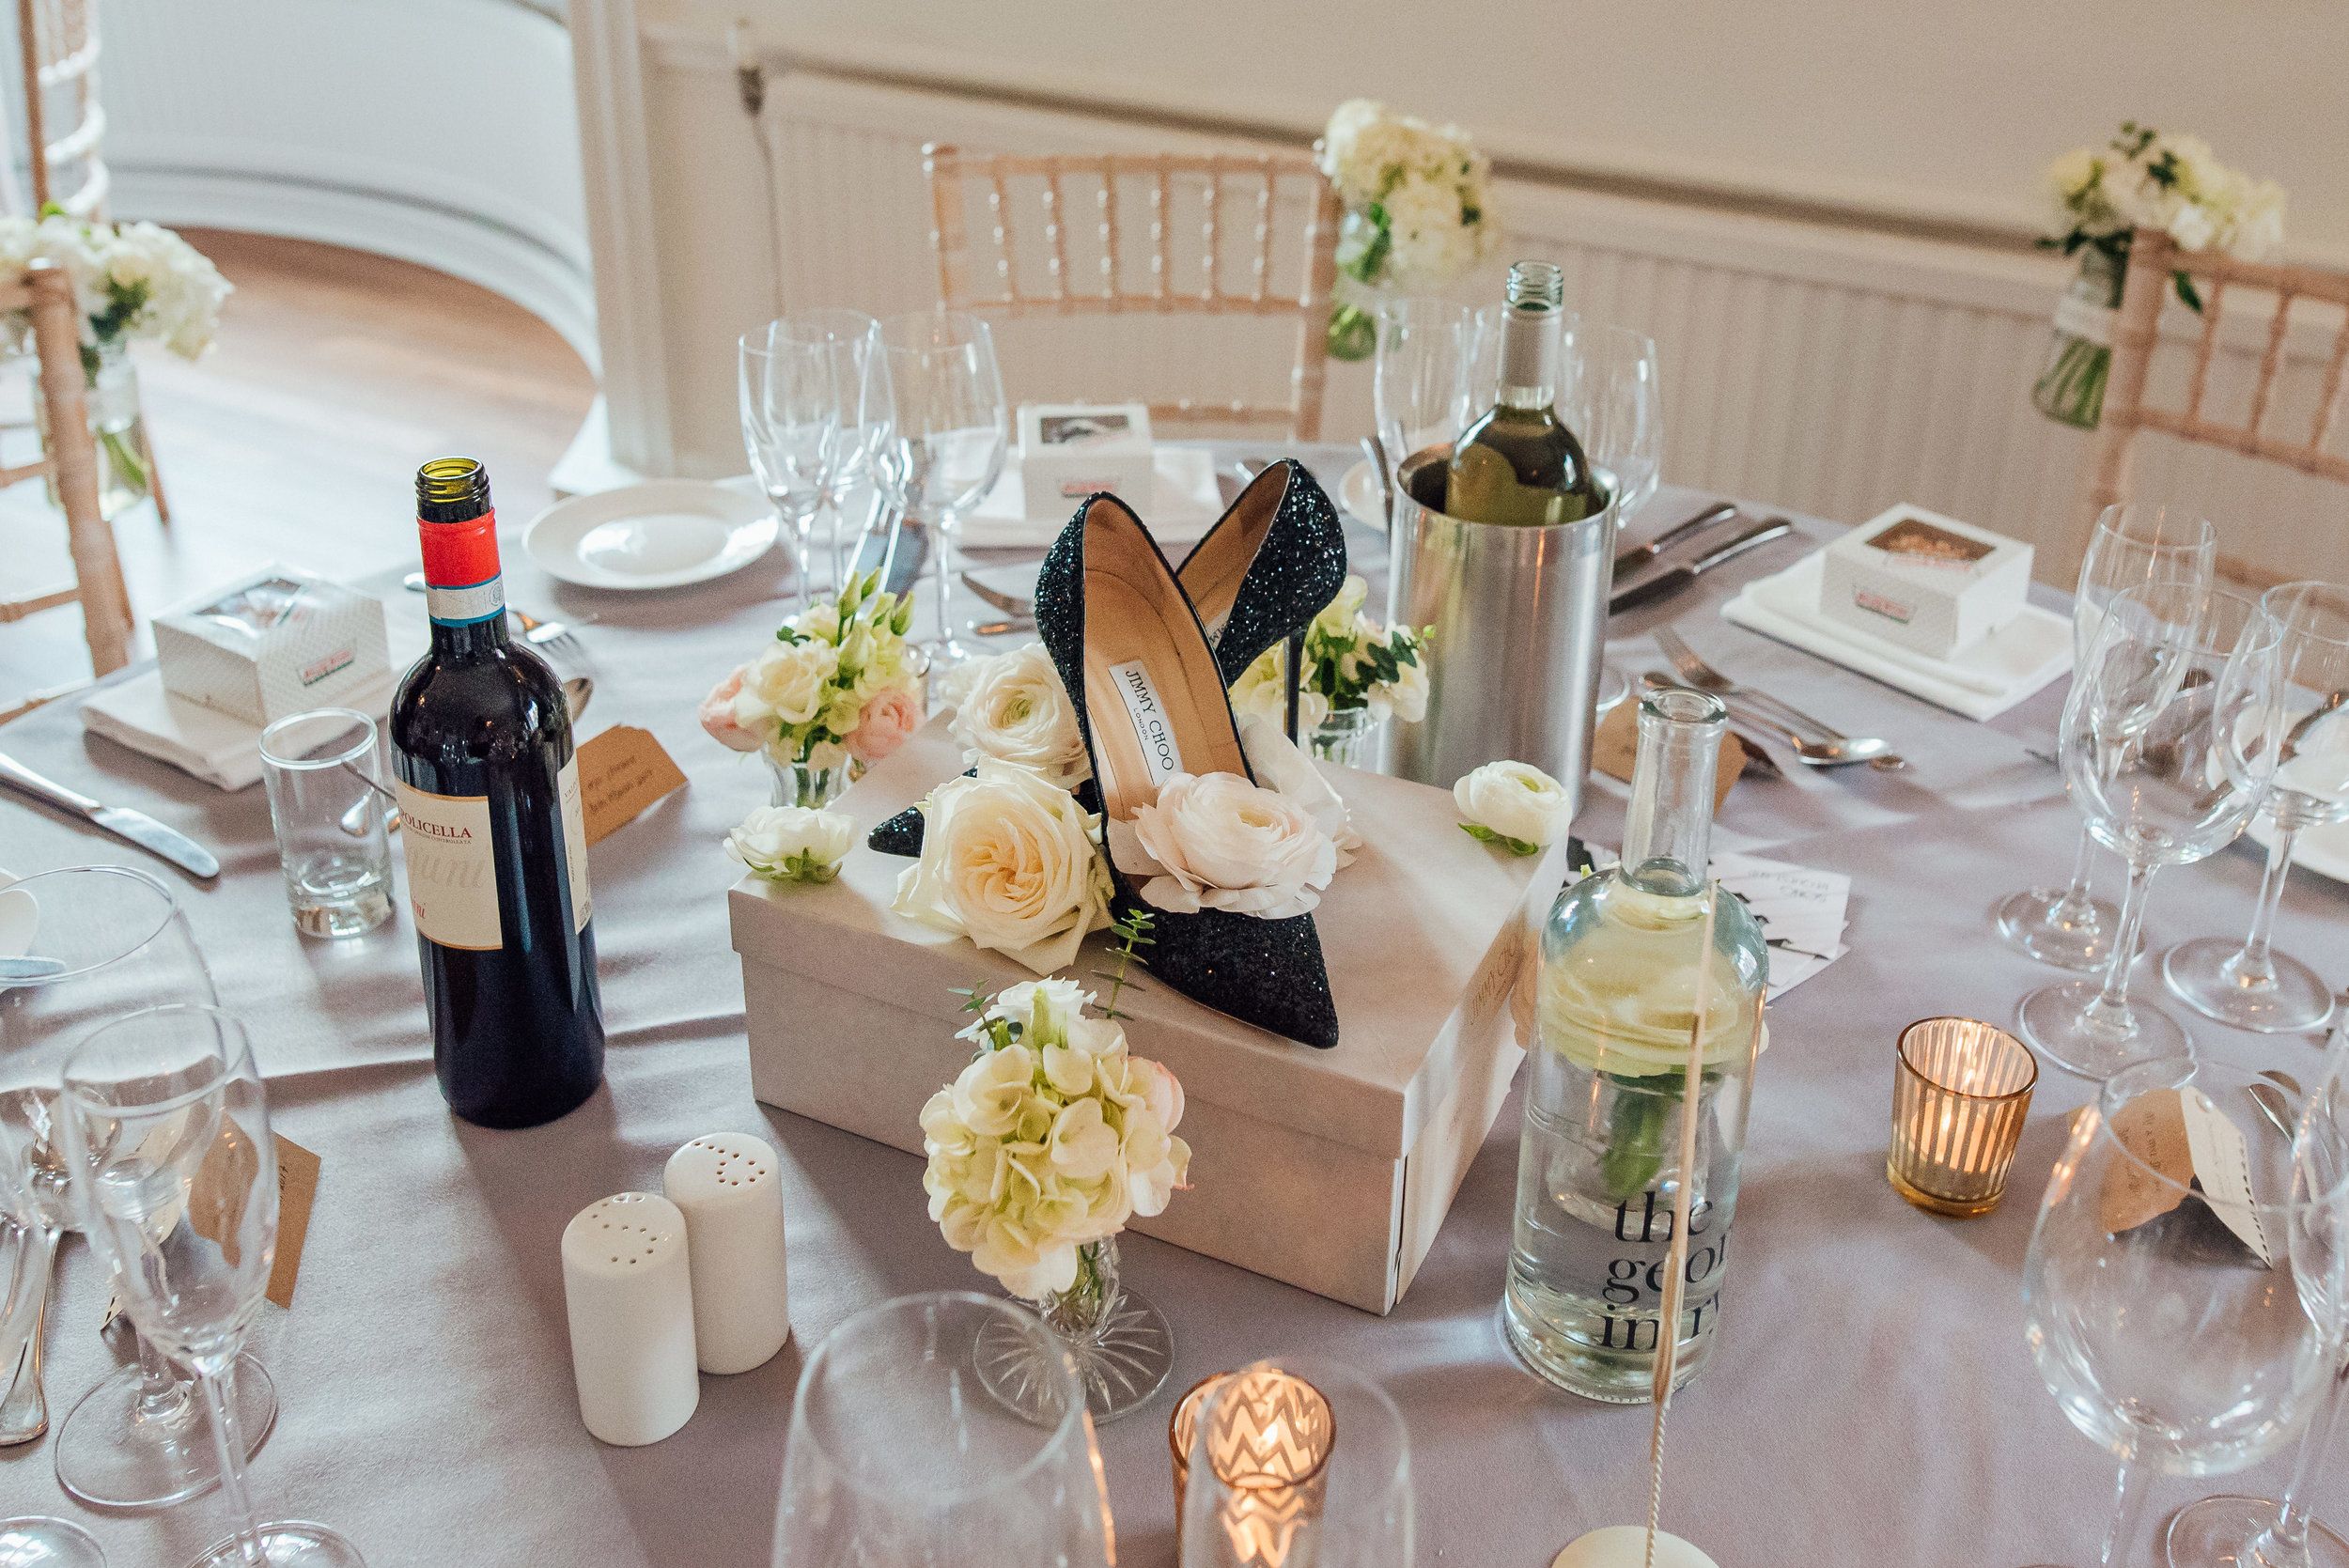 AMY JAMES PHOTOGRAPHY - Documentary Wedding Photographer Hampshire Surrey and Dorset - The George in Rye Wedding Venue - Sussex Wedding - Jimmy Choo wedding shoes